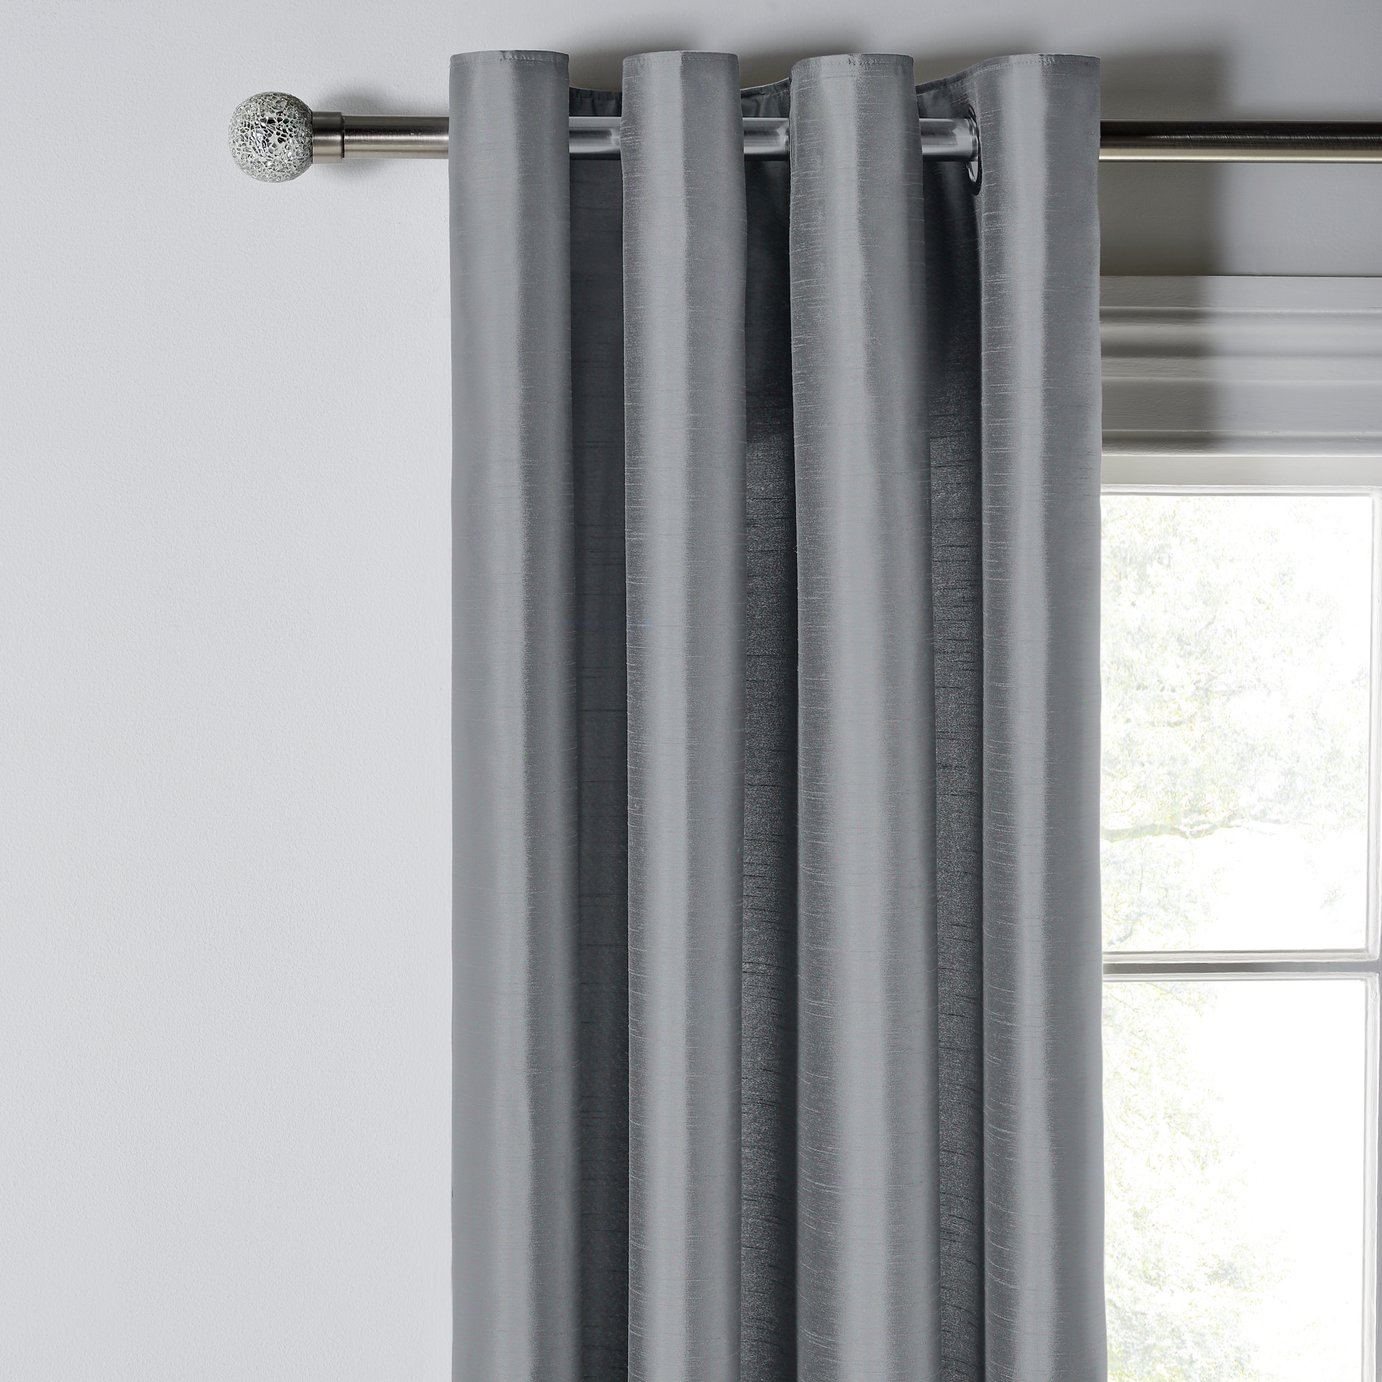 Argos Home Faux Silk Lined Curtains 168x229cm - Dove Grey